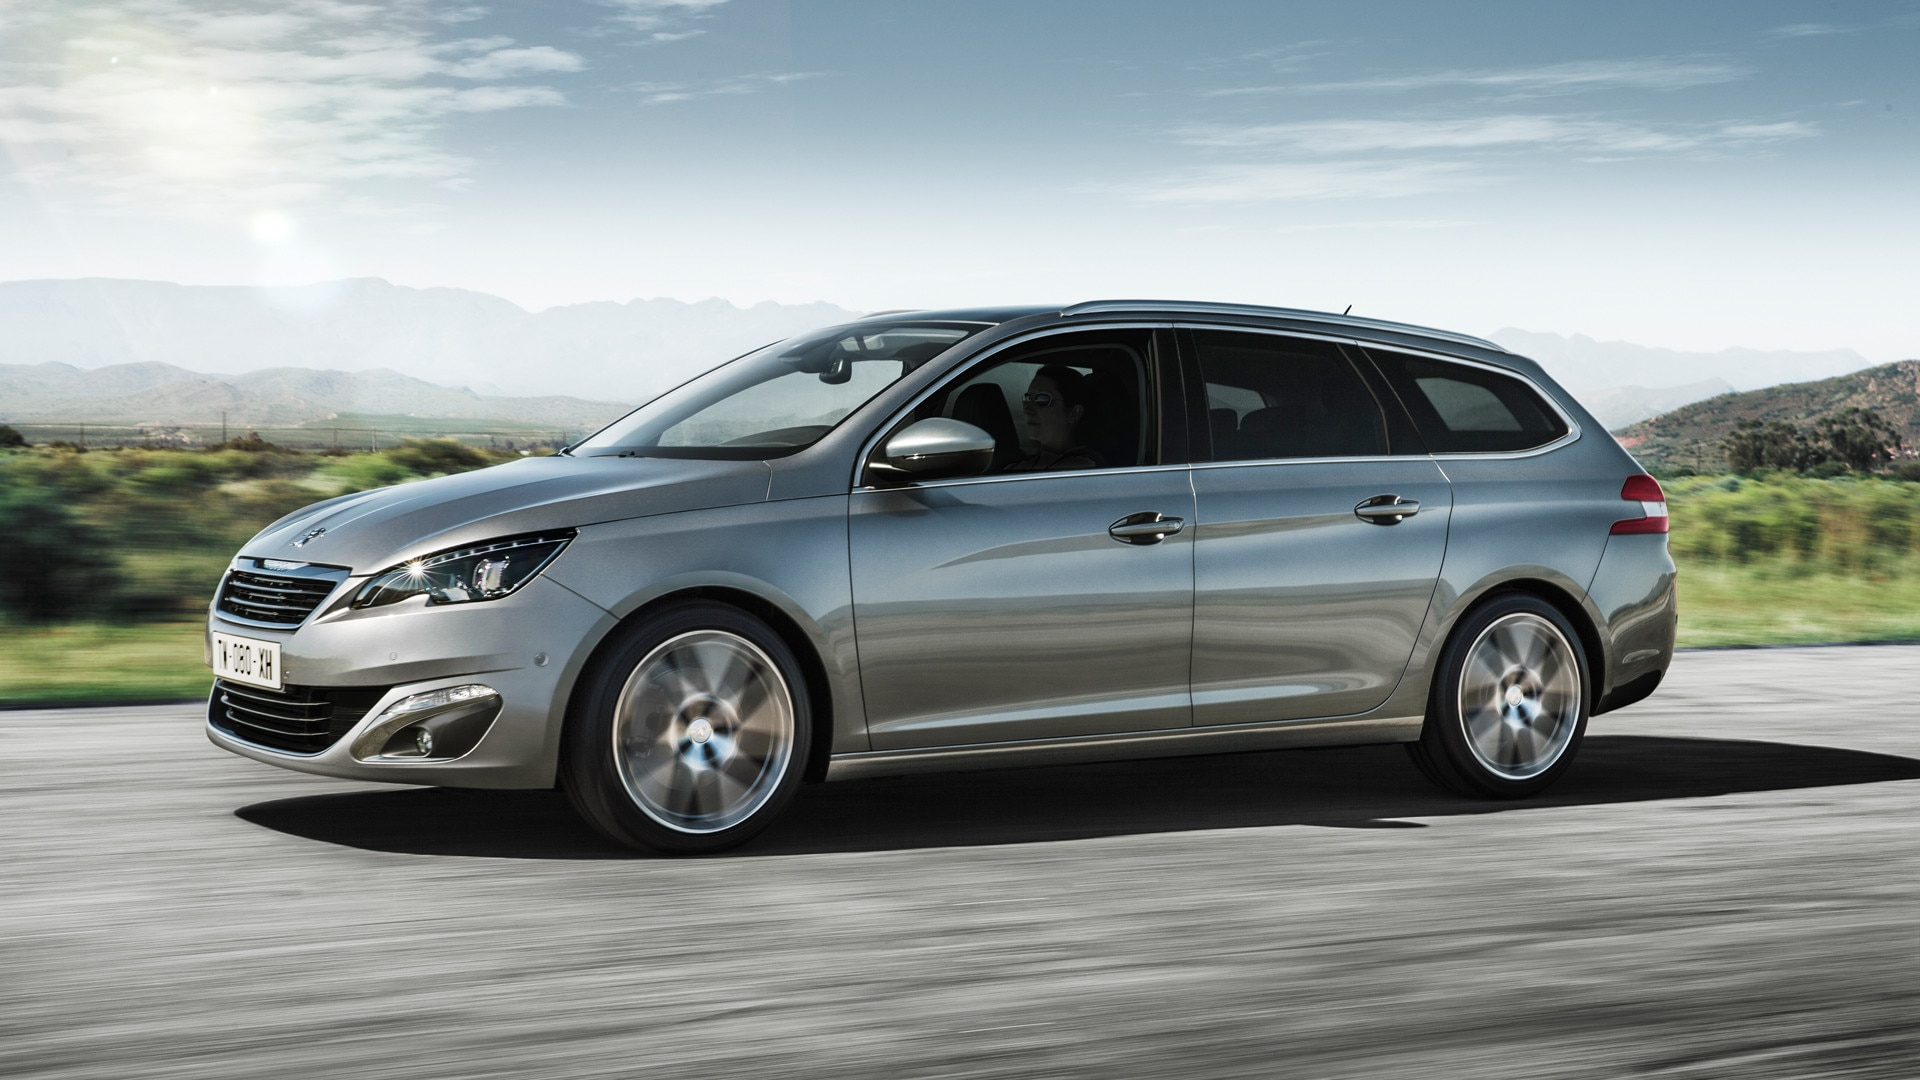 Peugeot 308 SW | 7 seater Practical Estate Car and Station Wagon